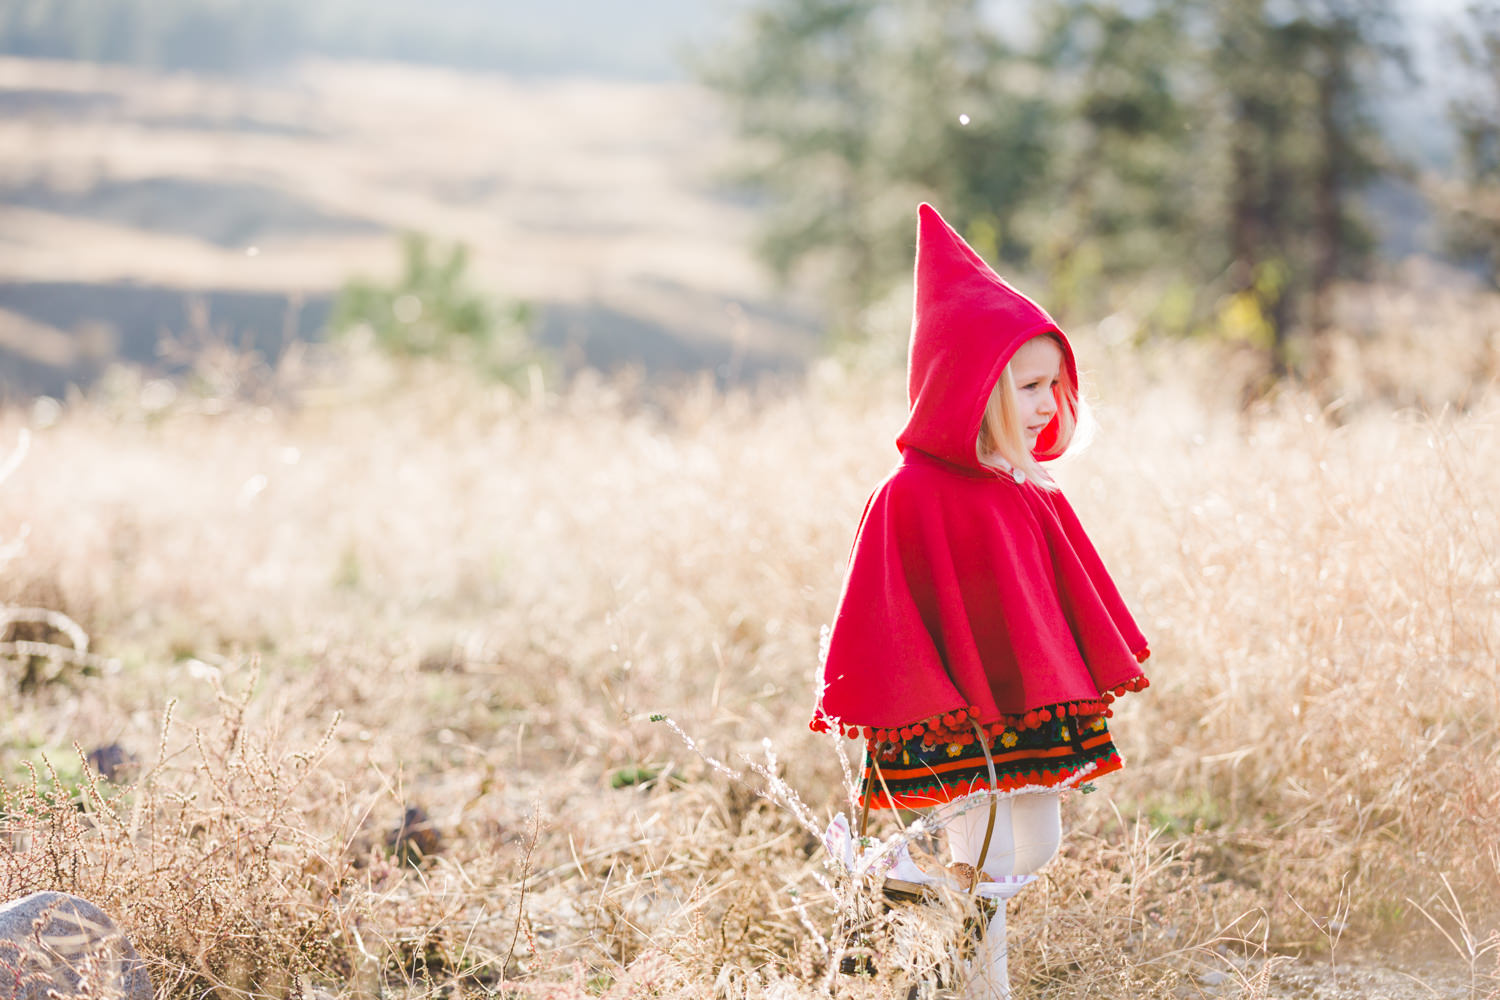 kelowna-halloween-family-photoshoot-little-red-riding-hood-photography-okanagan-halloween-family-photographers-julie-dorge (7 of 27).jpg